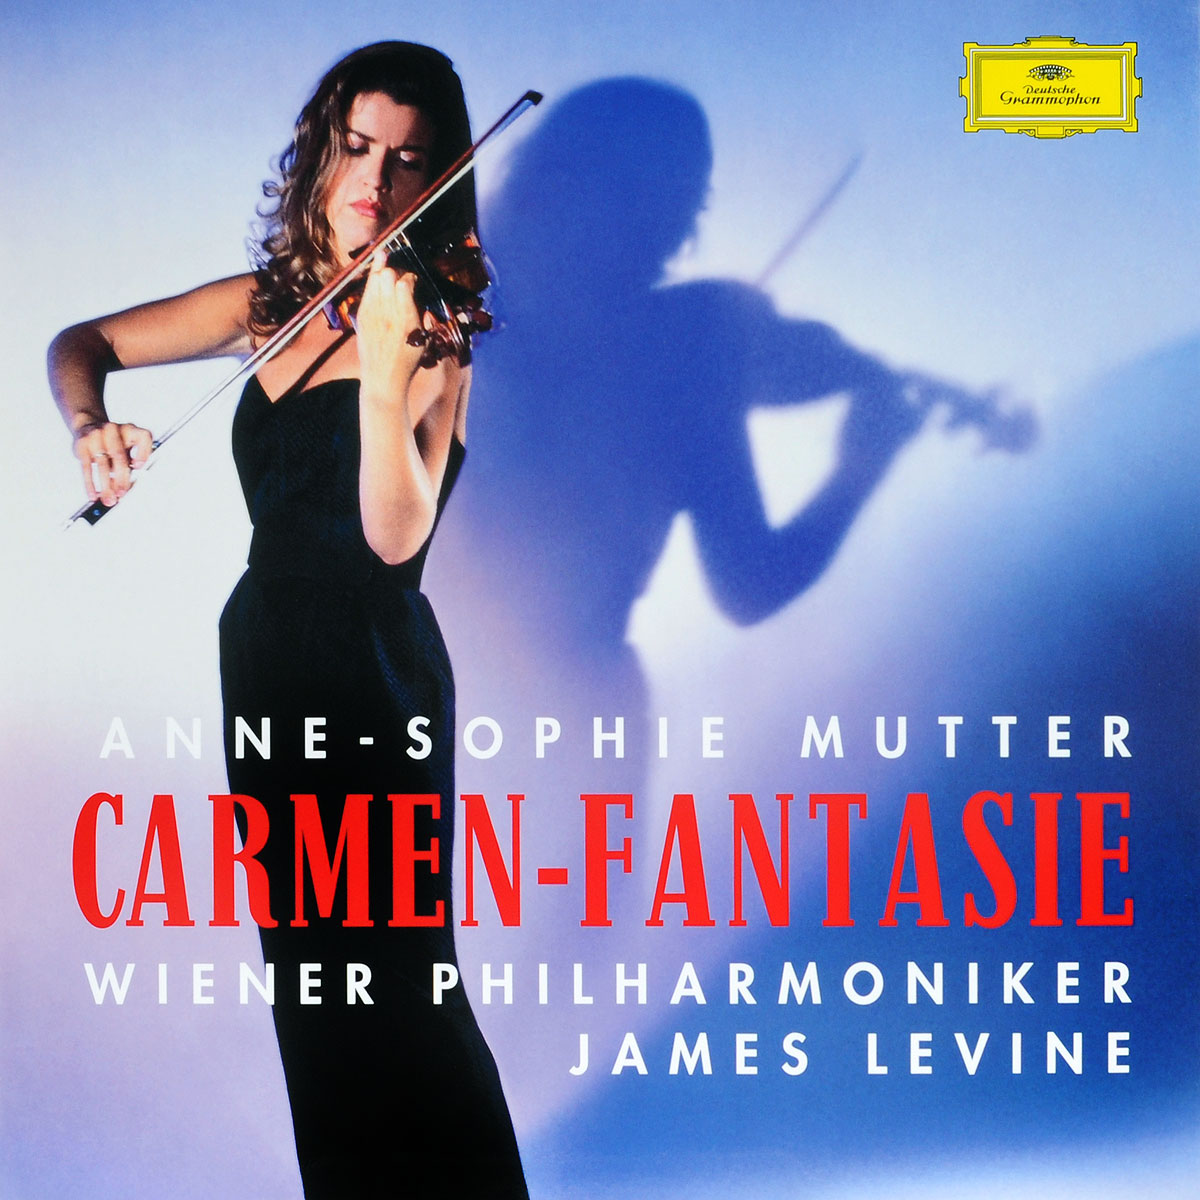 Anne-Sophie Mutter, Wiener Philharmoniker, James Levine. Carmen-Fantasie (LP)